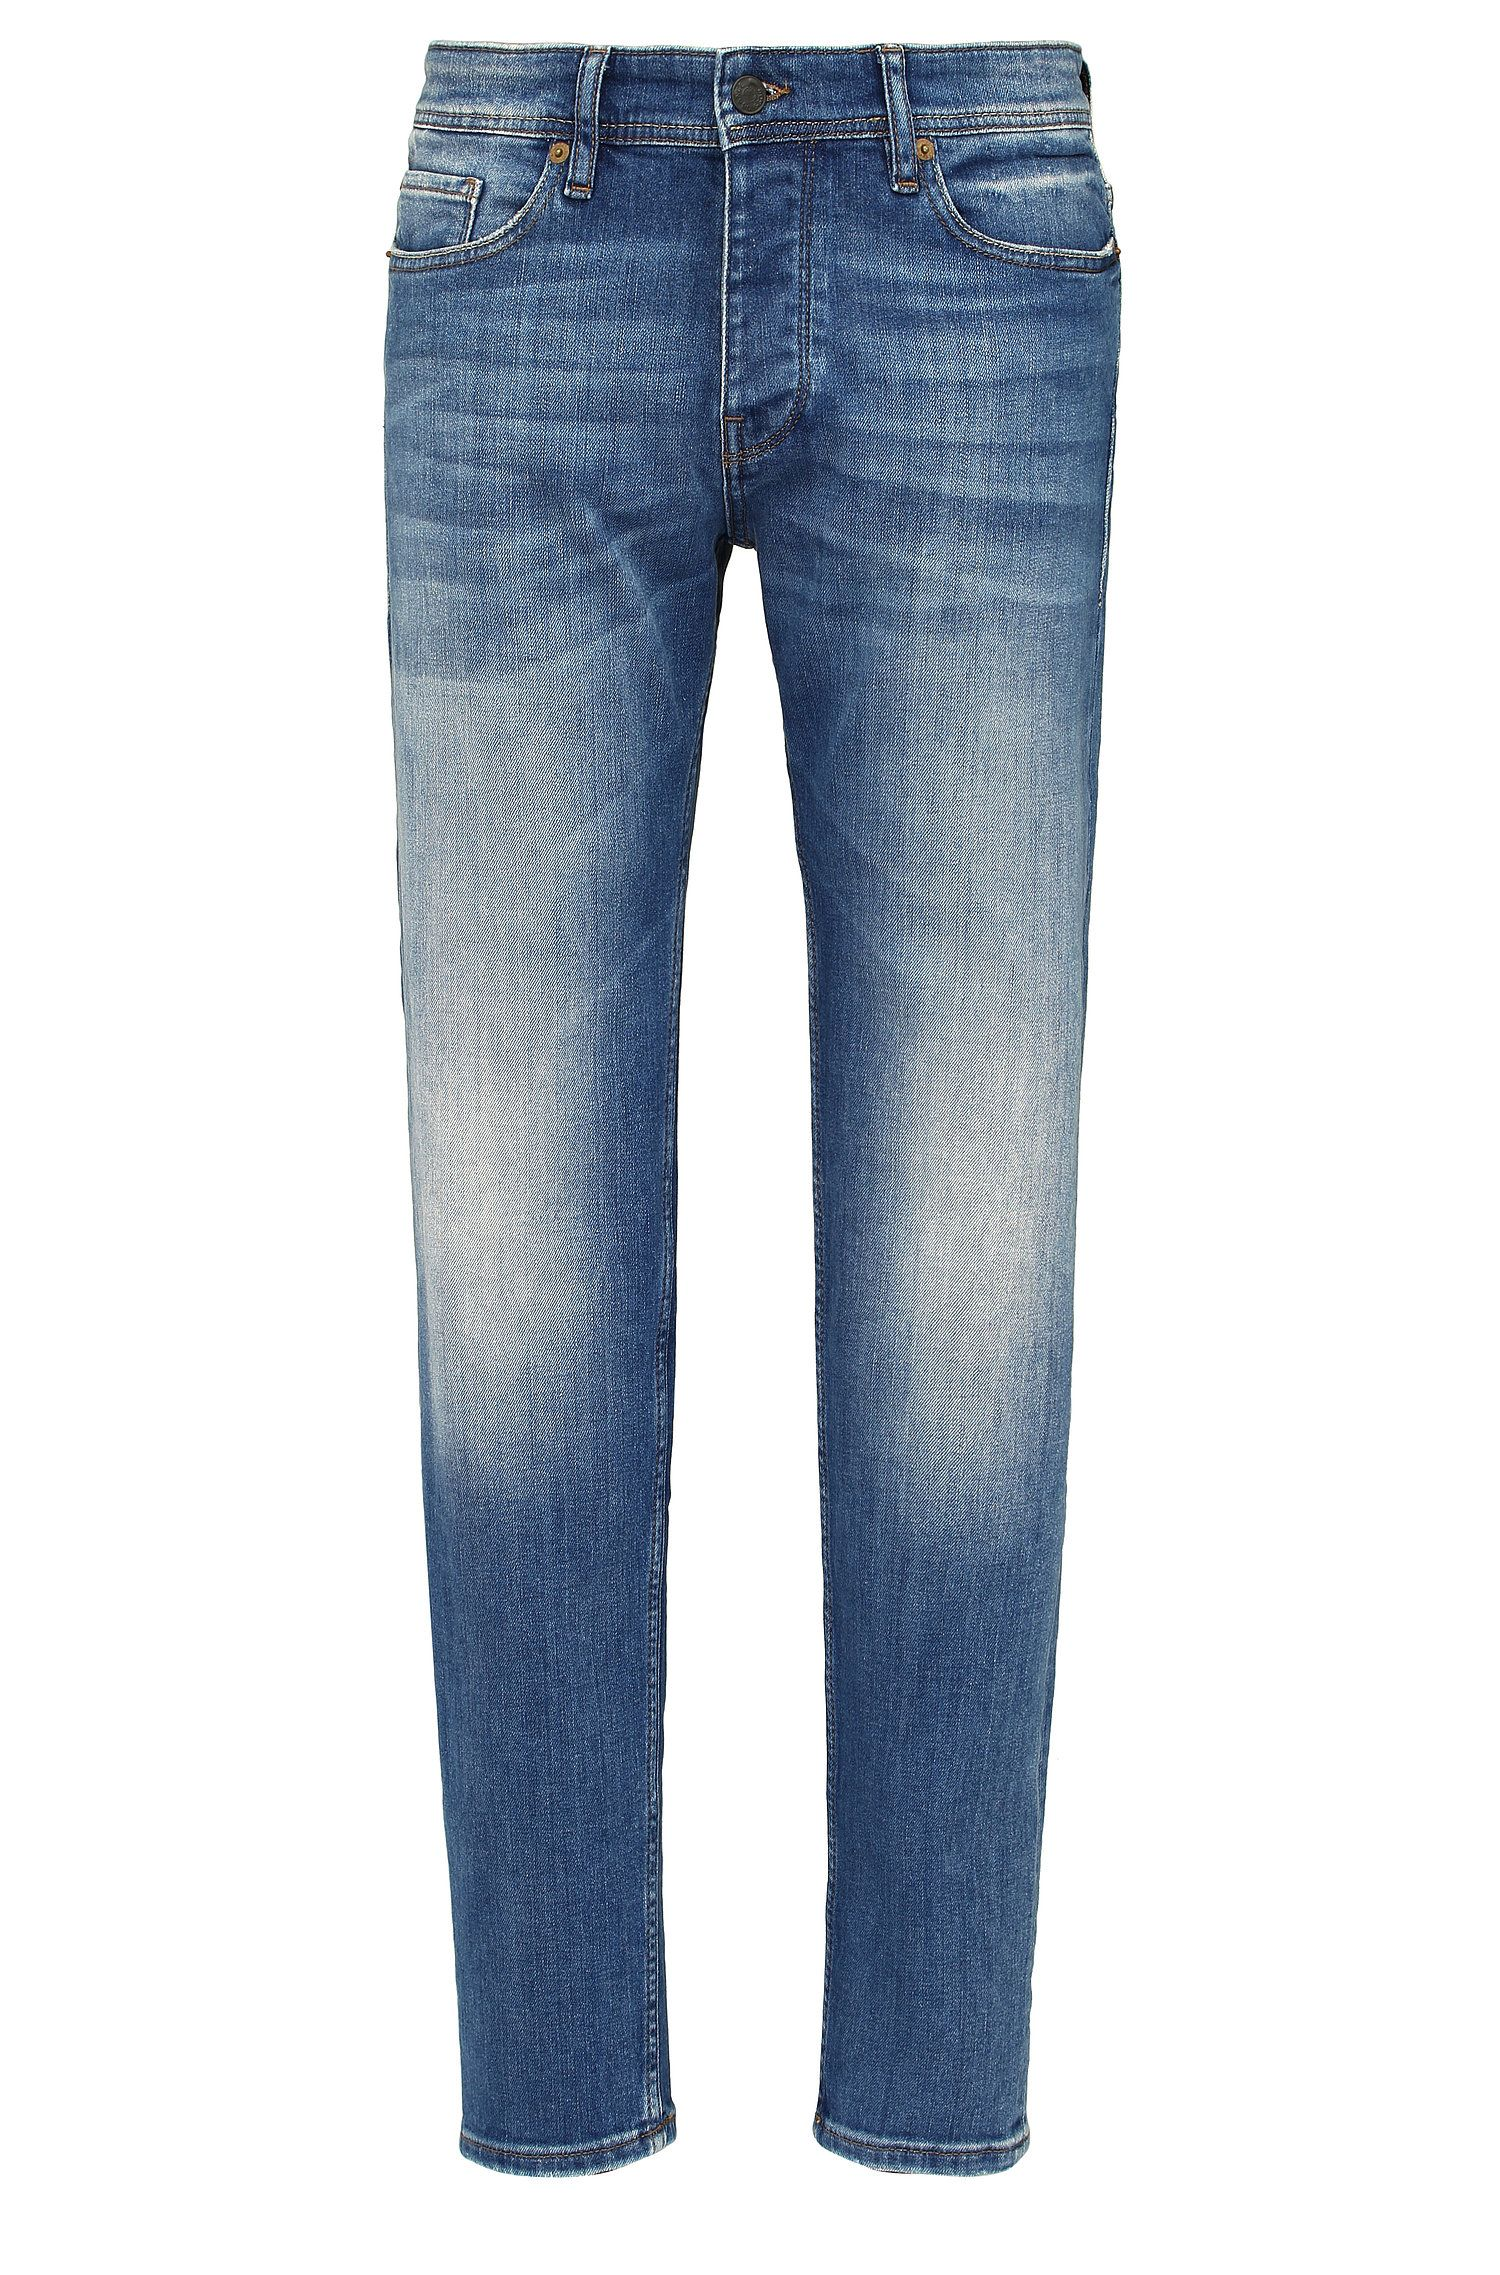 Jeans Tapered Fit en coton extensible : « Orange90 »